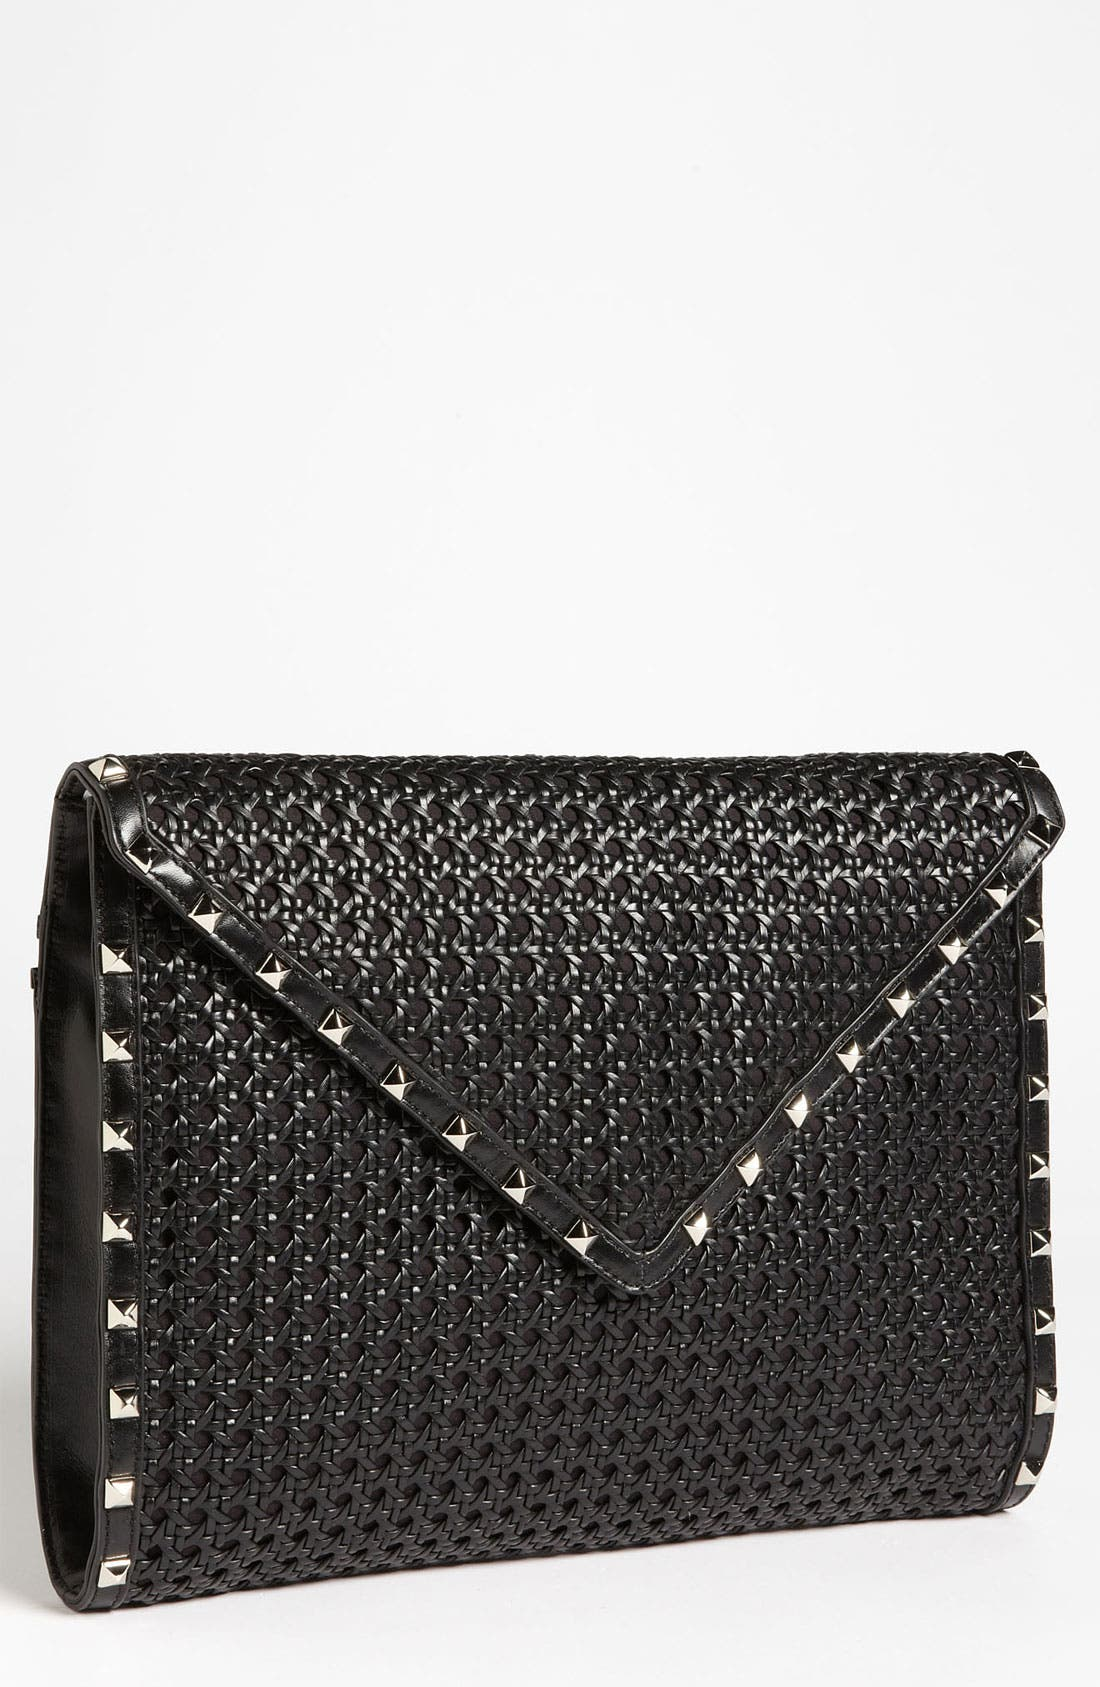 Alternate Image 1 Selected - Rebecca Minkoff 'Owen' Envelope Clutch